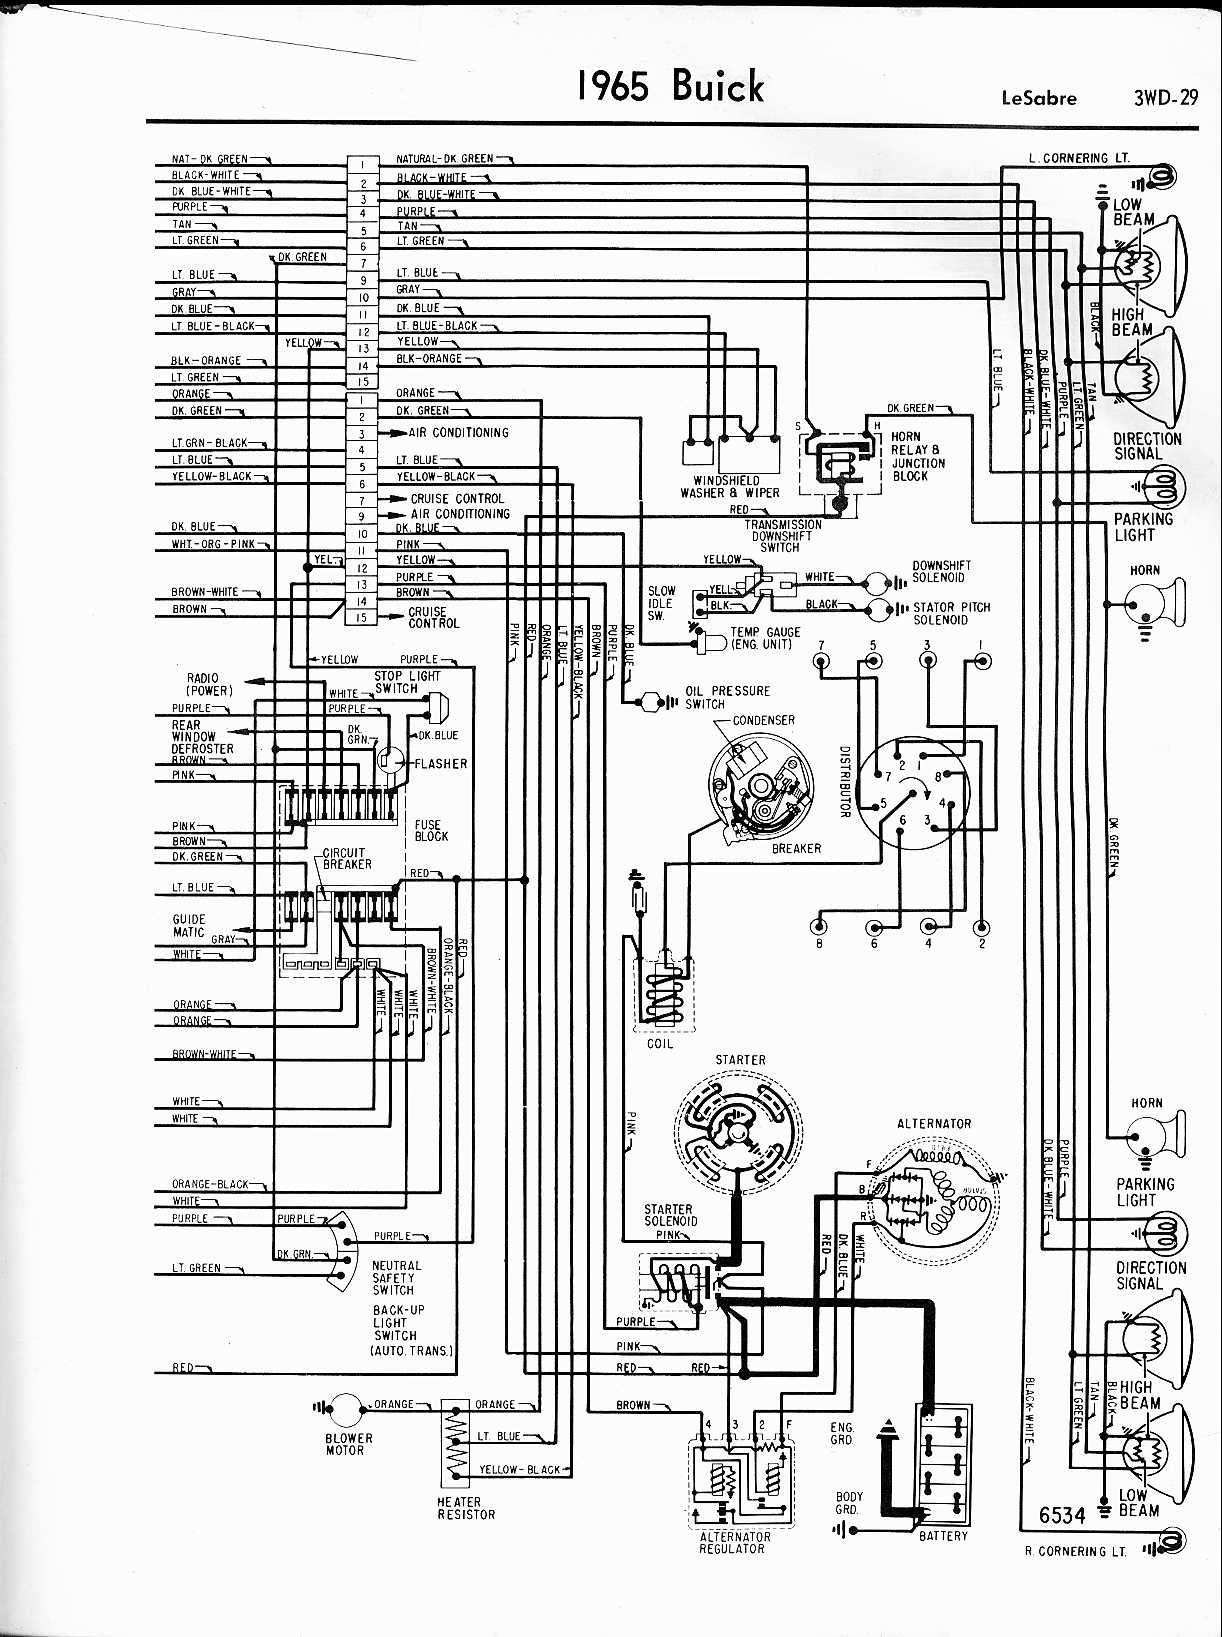 Buick Regal Window Wiring Diagram